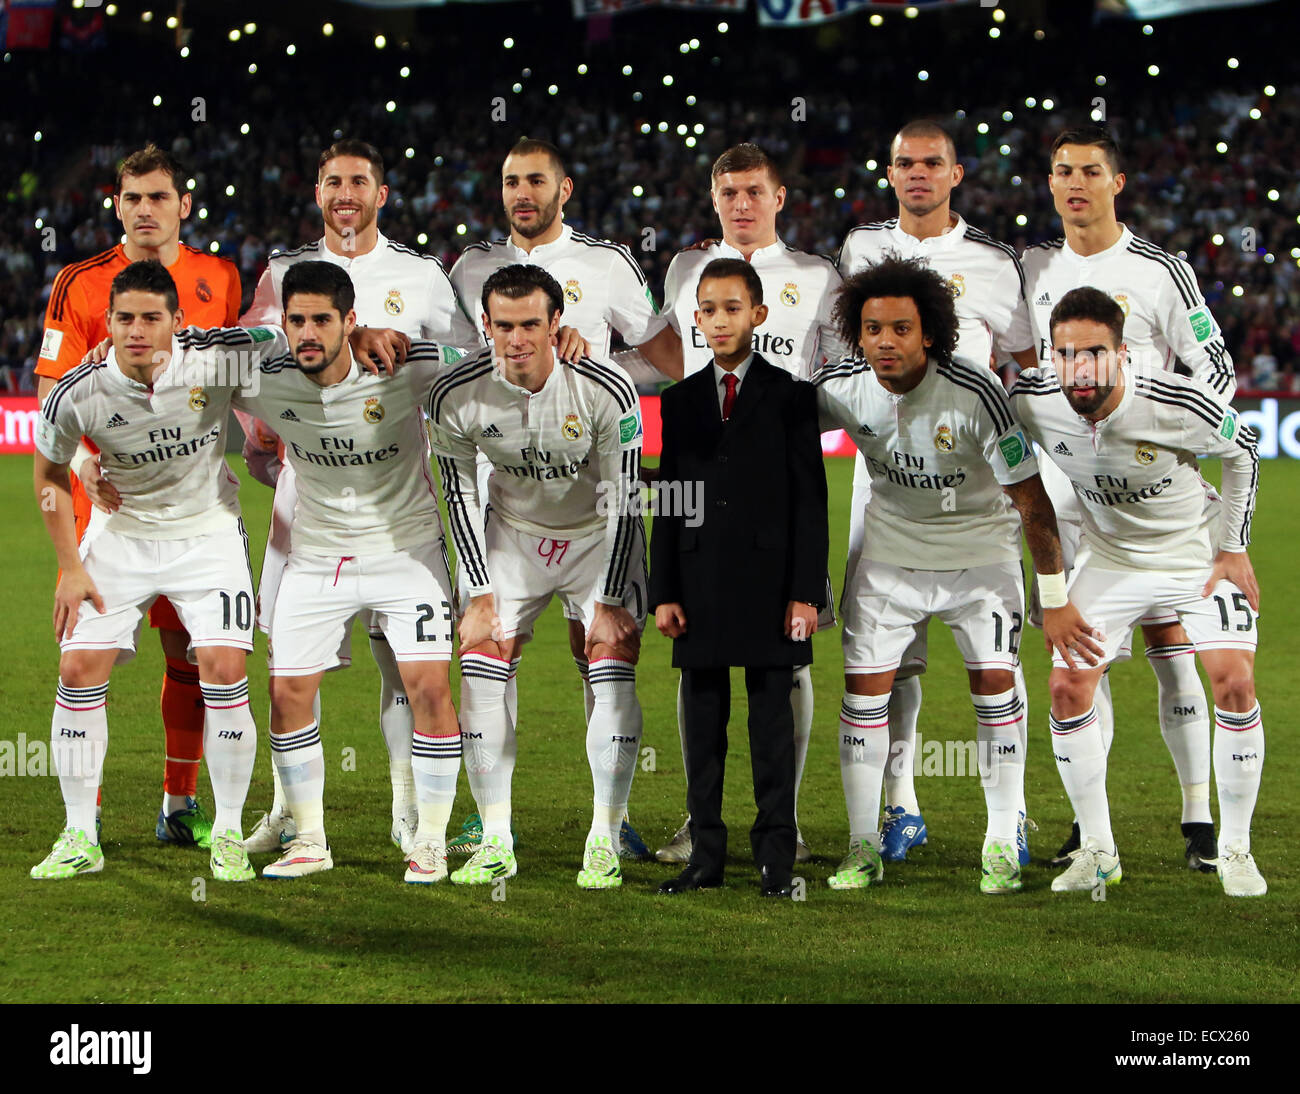 Marrakesh Morocco 20th Dec 2014 Fifa World Club Cup Final Real